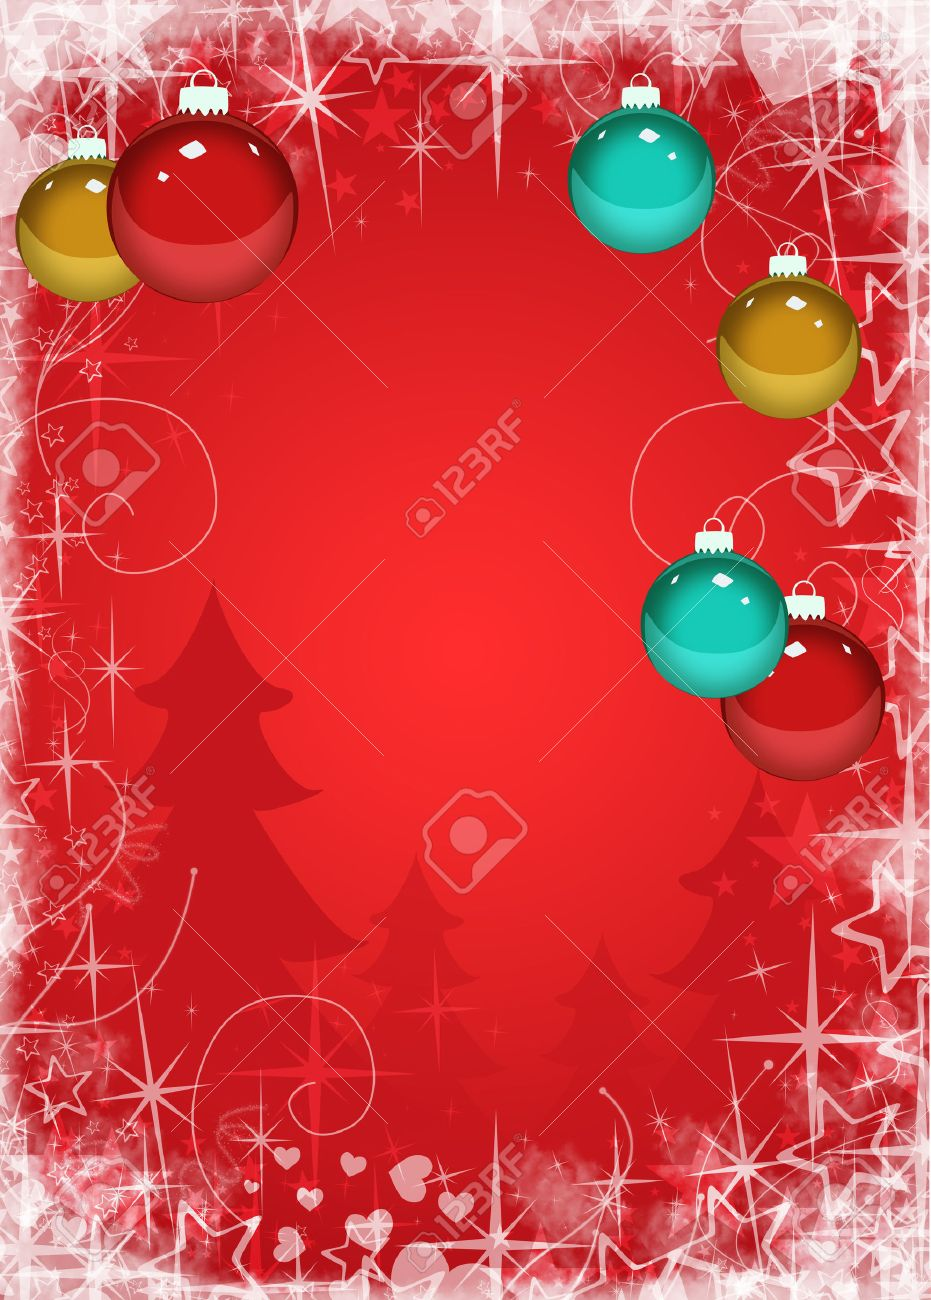 merry christmas decoration poster or flyer background space merry christmas decoration poster or flyer background space stock photo 23419506